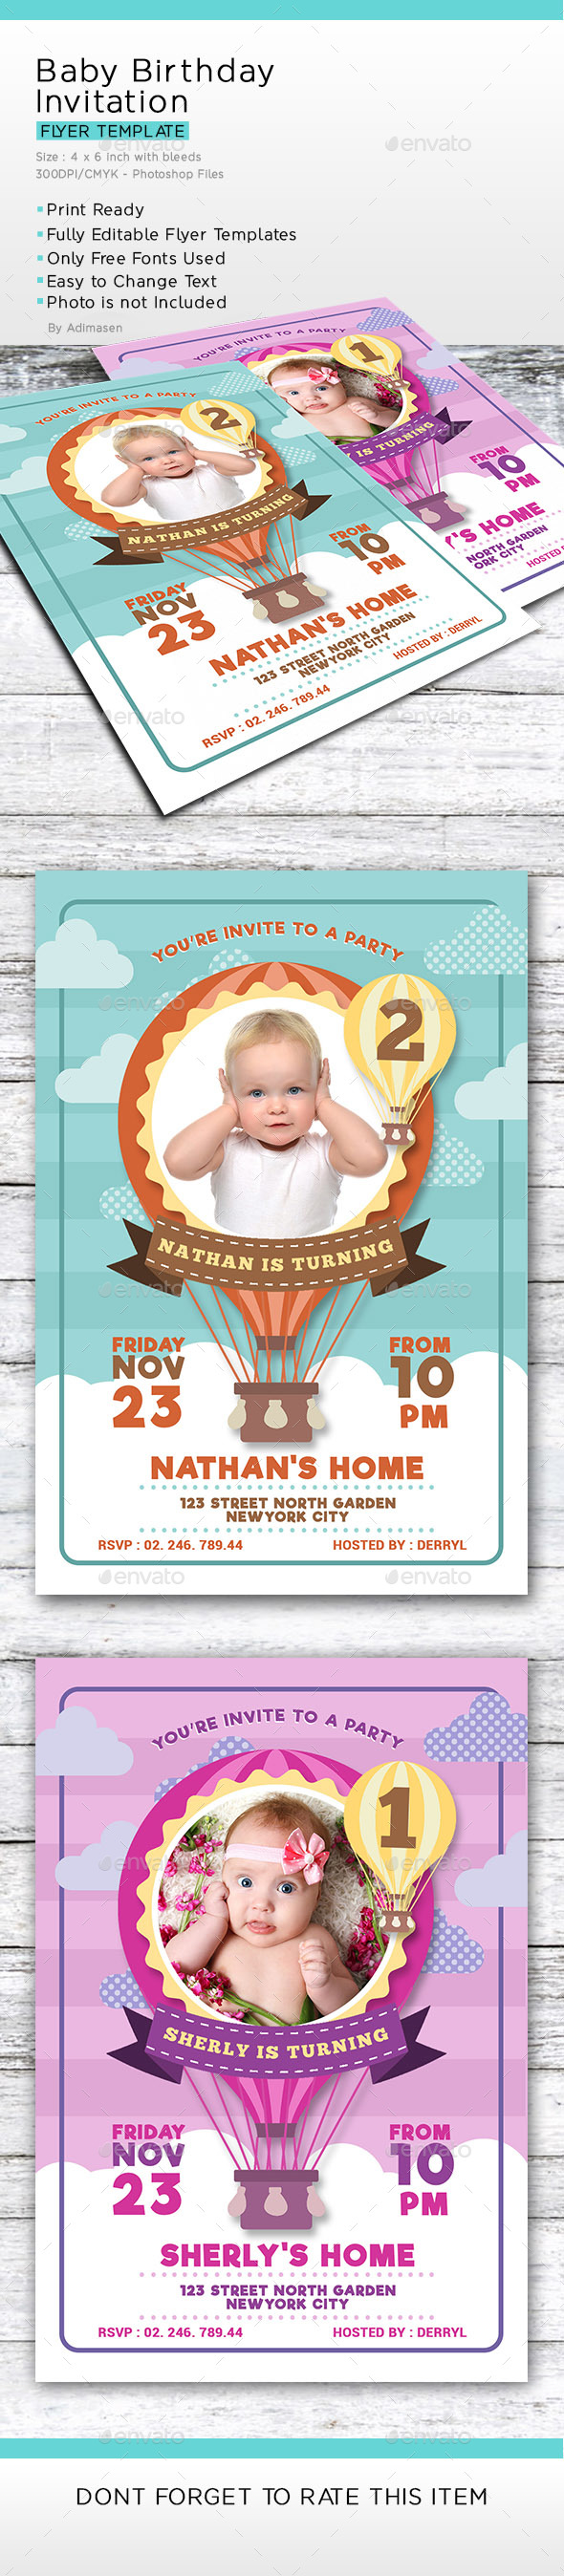 Baby Birthday Invitation - Birthday Greeting Cards